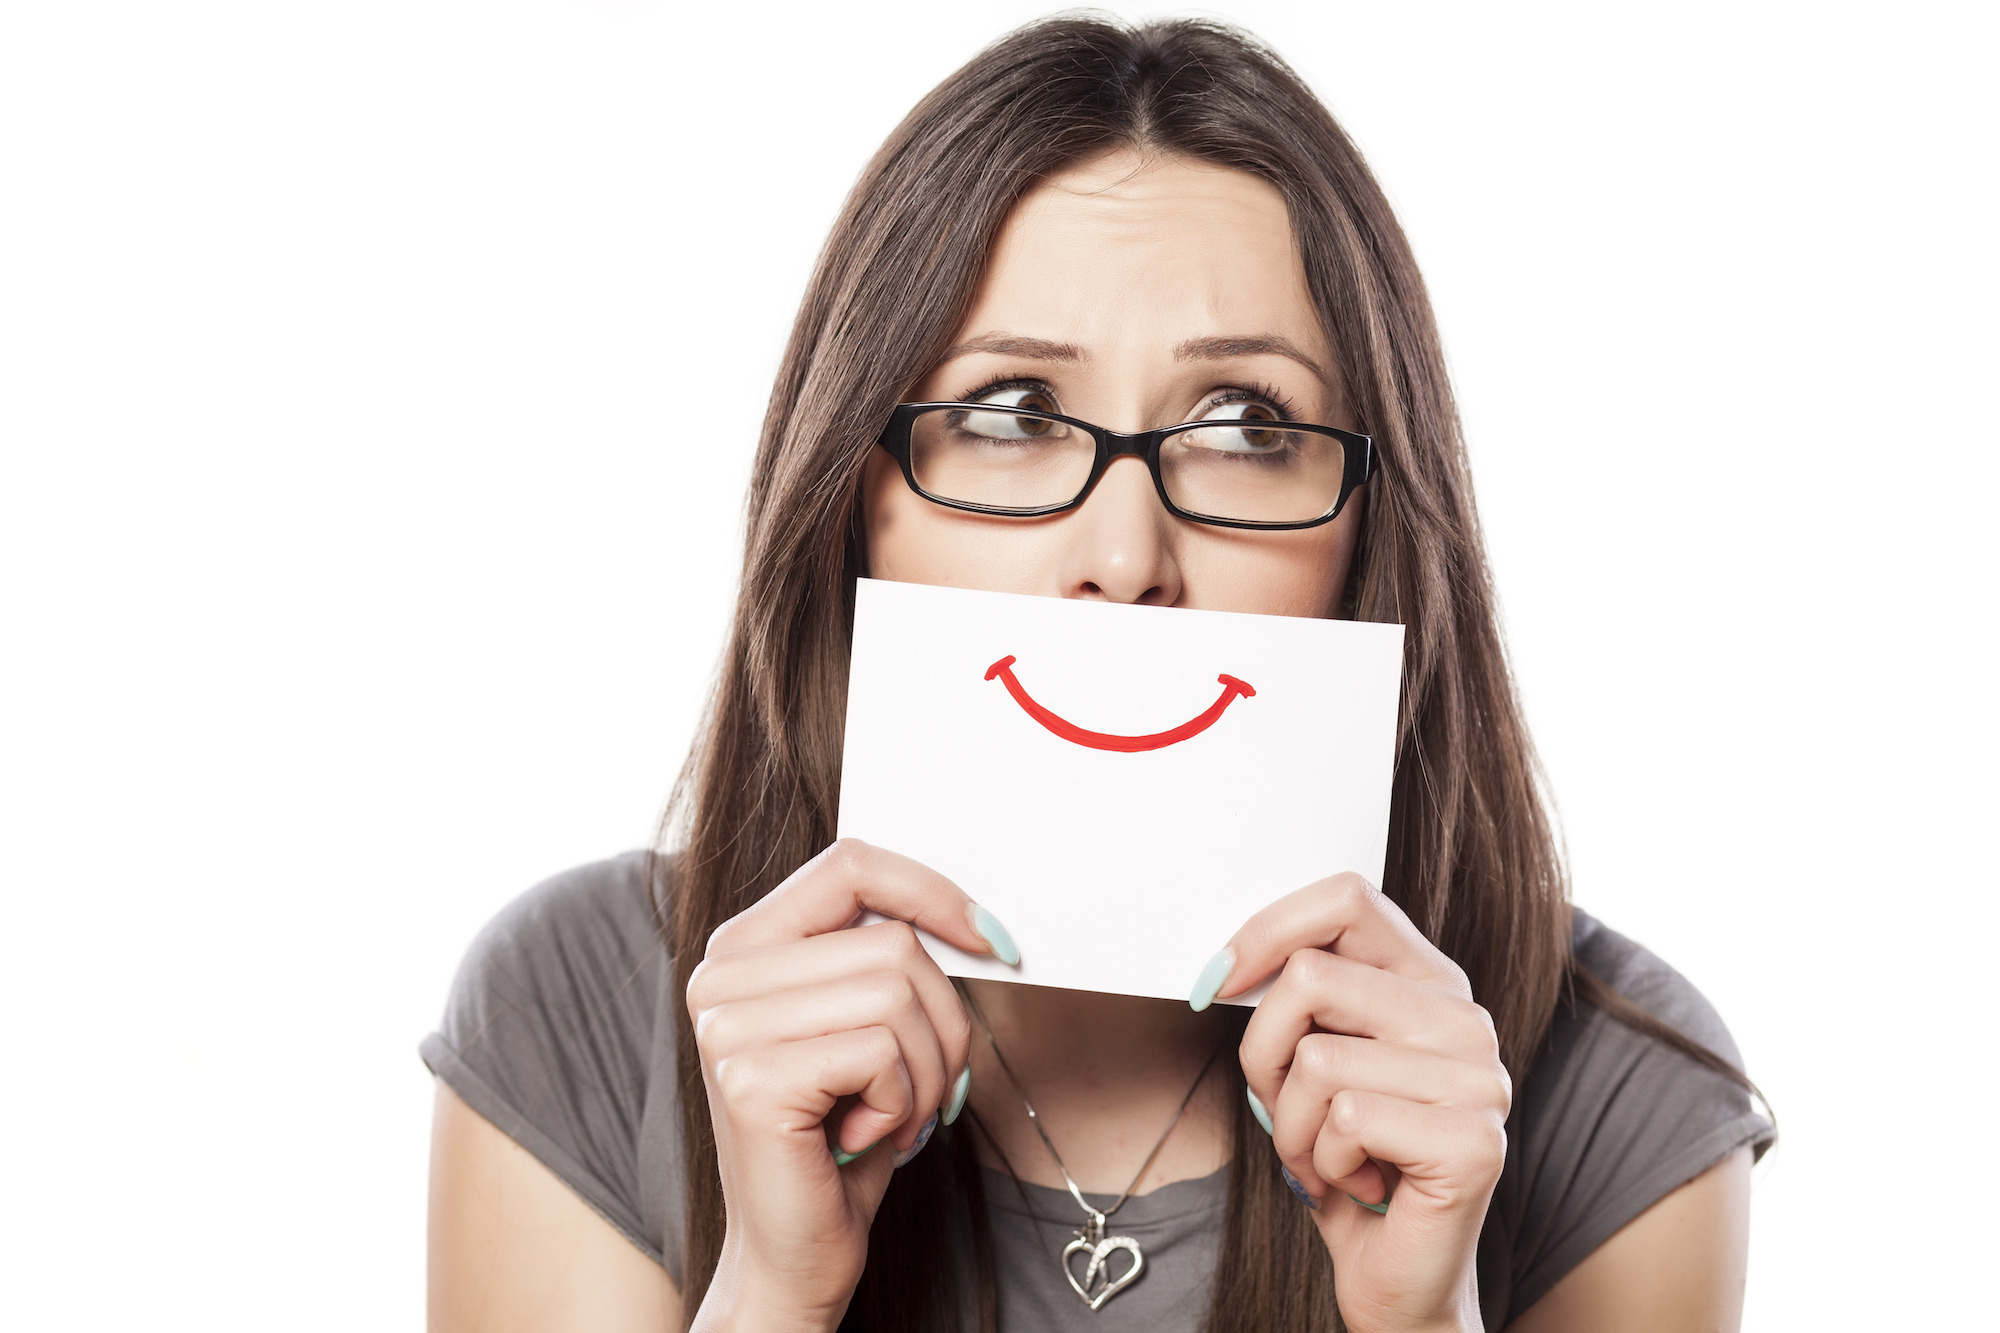 This is an image of a woman putting a smiley face sign over her mouth. Adoptees can break away and be free from faking smiles and happiness.